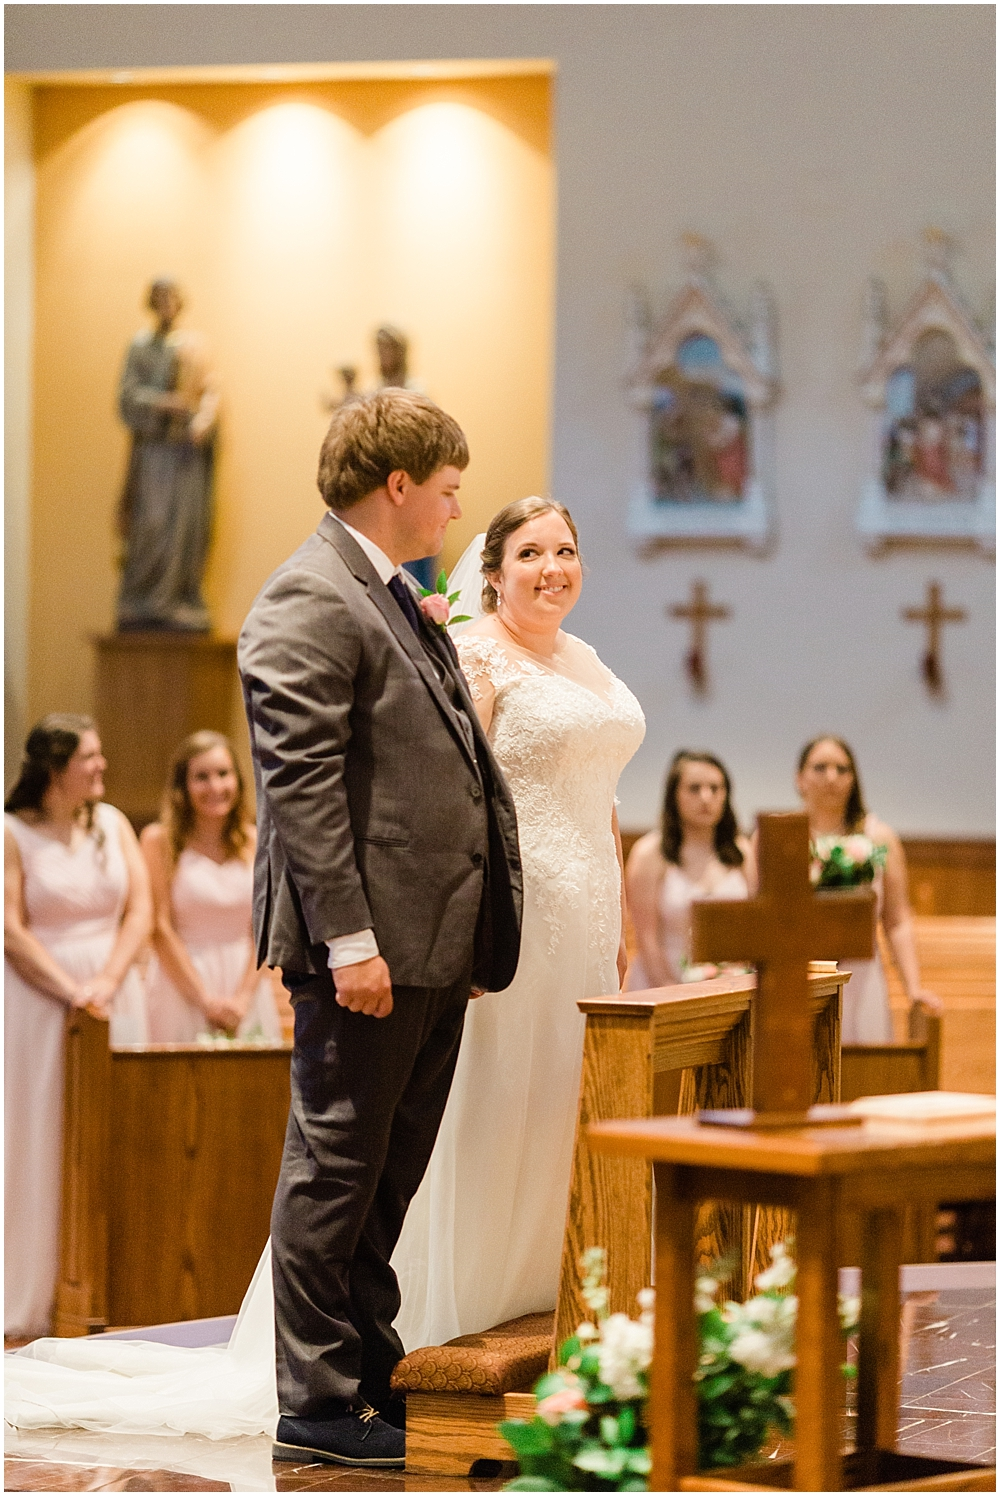 Ashton-Clark-Photography-Wedding-Portrait-Family-Photographer-Mobile-Alabama_0085.jpg